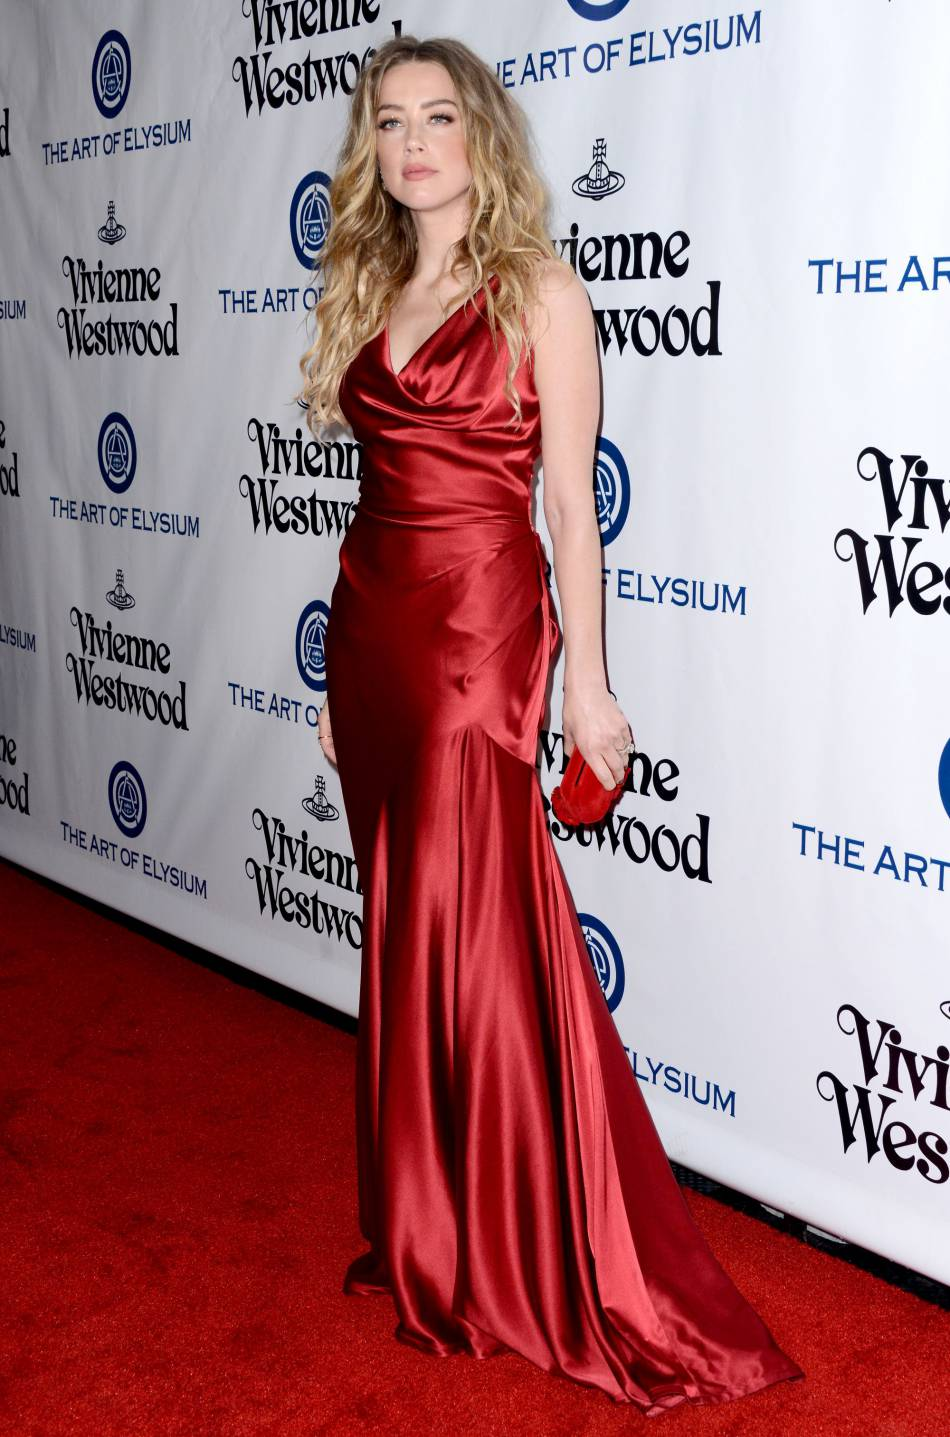 Amber Heard, radieuse dans sa robe moulante, couleur rouge passion.